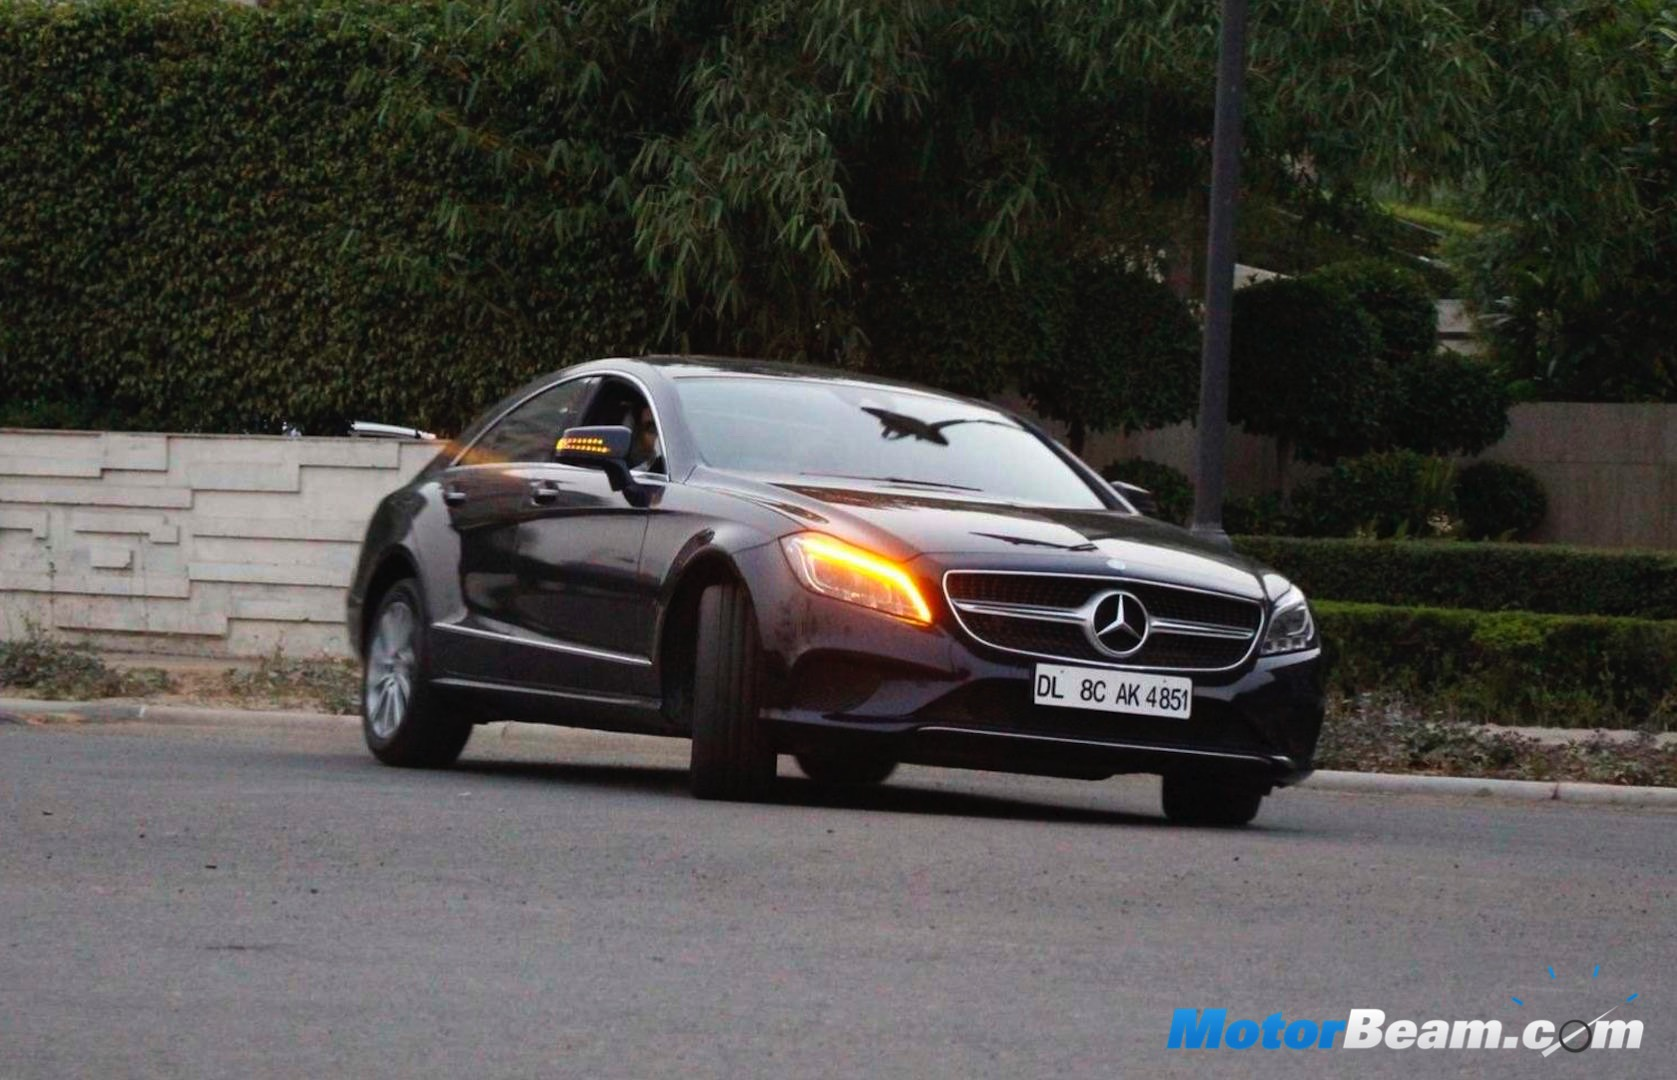 All Types cls mercedes 2015 : Mercedes CLS 250 CDI Test Drive Review